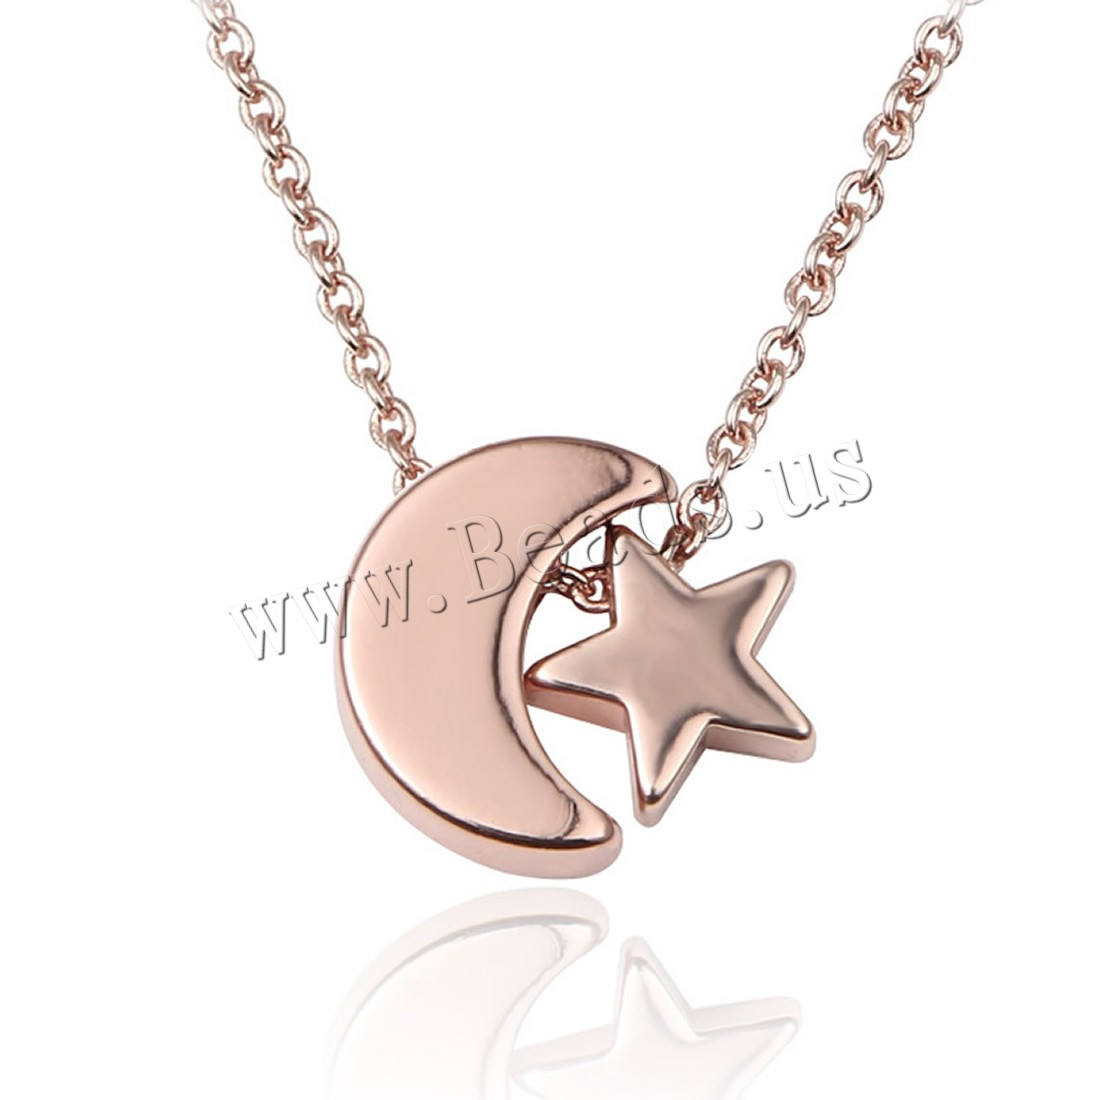 Buy Brass Necklace 5cm extender chain Moon Star 18K gold plated rolo chain & woman nickel lead & cadmium free 7x12mm Sold Per Approx 17 Inch Strand